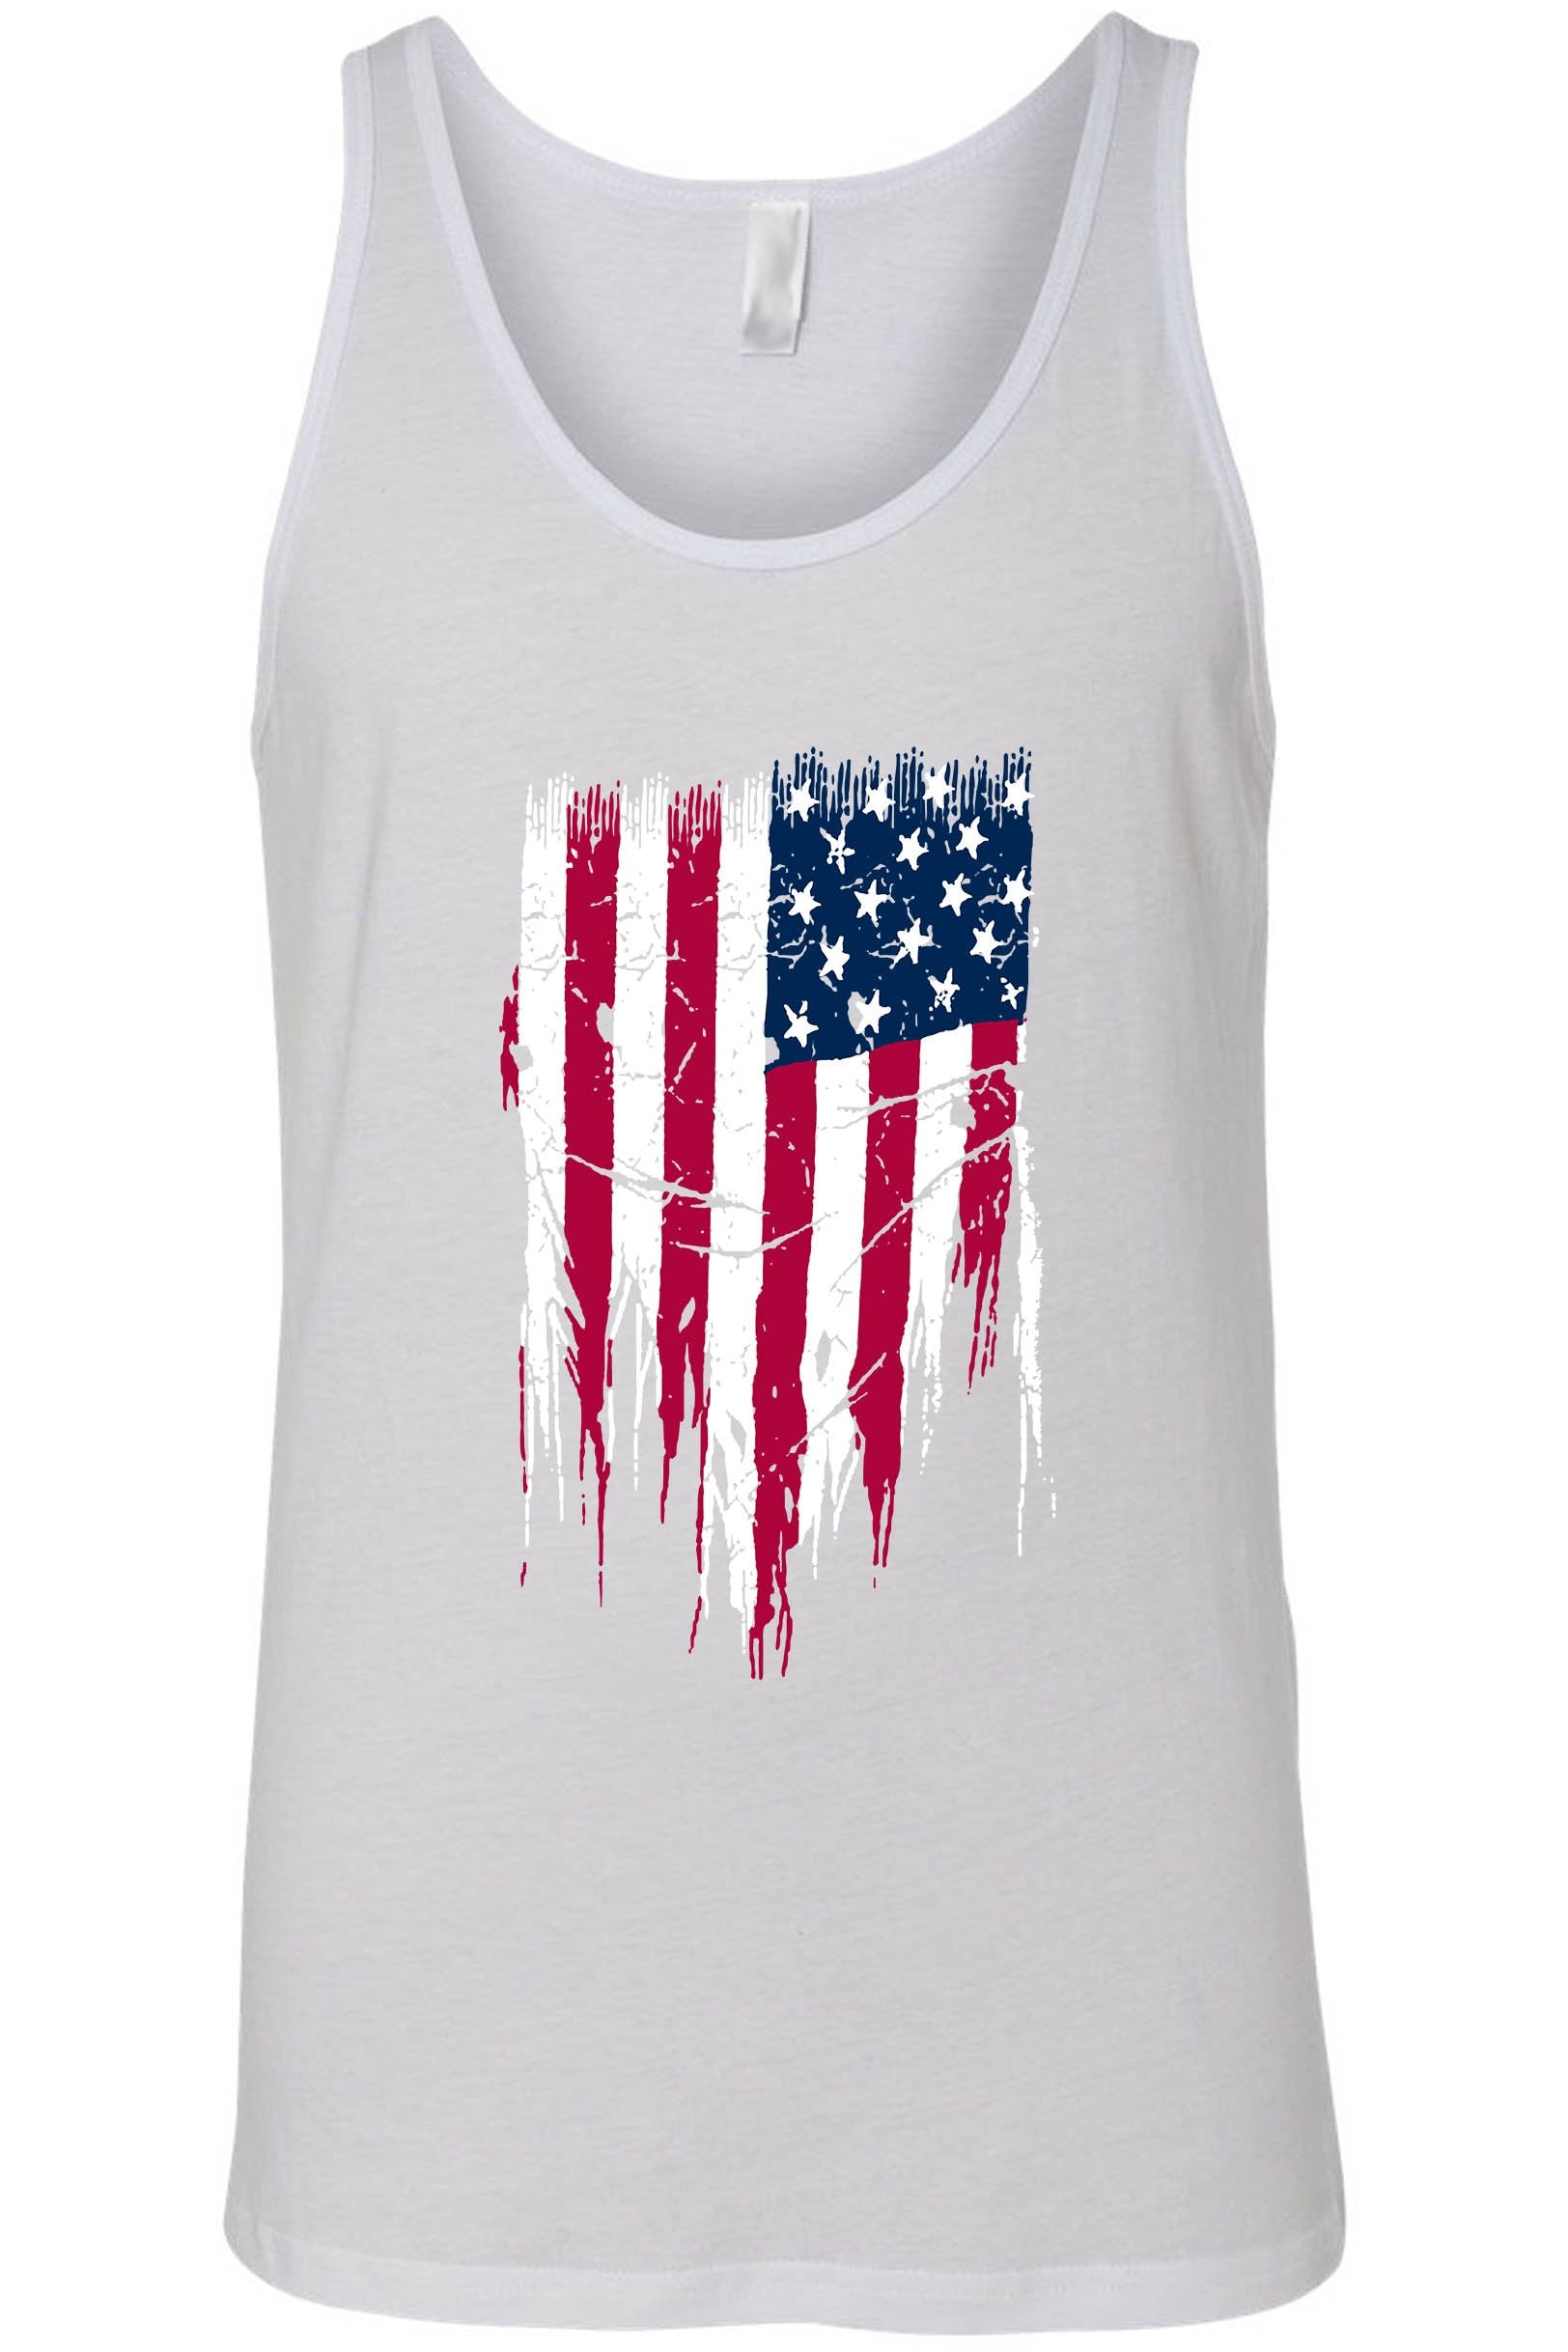 Men's/Unisex Ripped USA Flag Tank Top Shirt